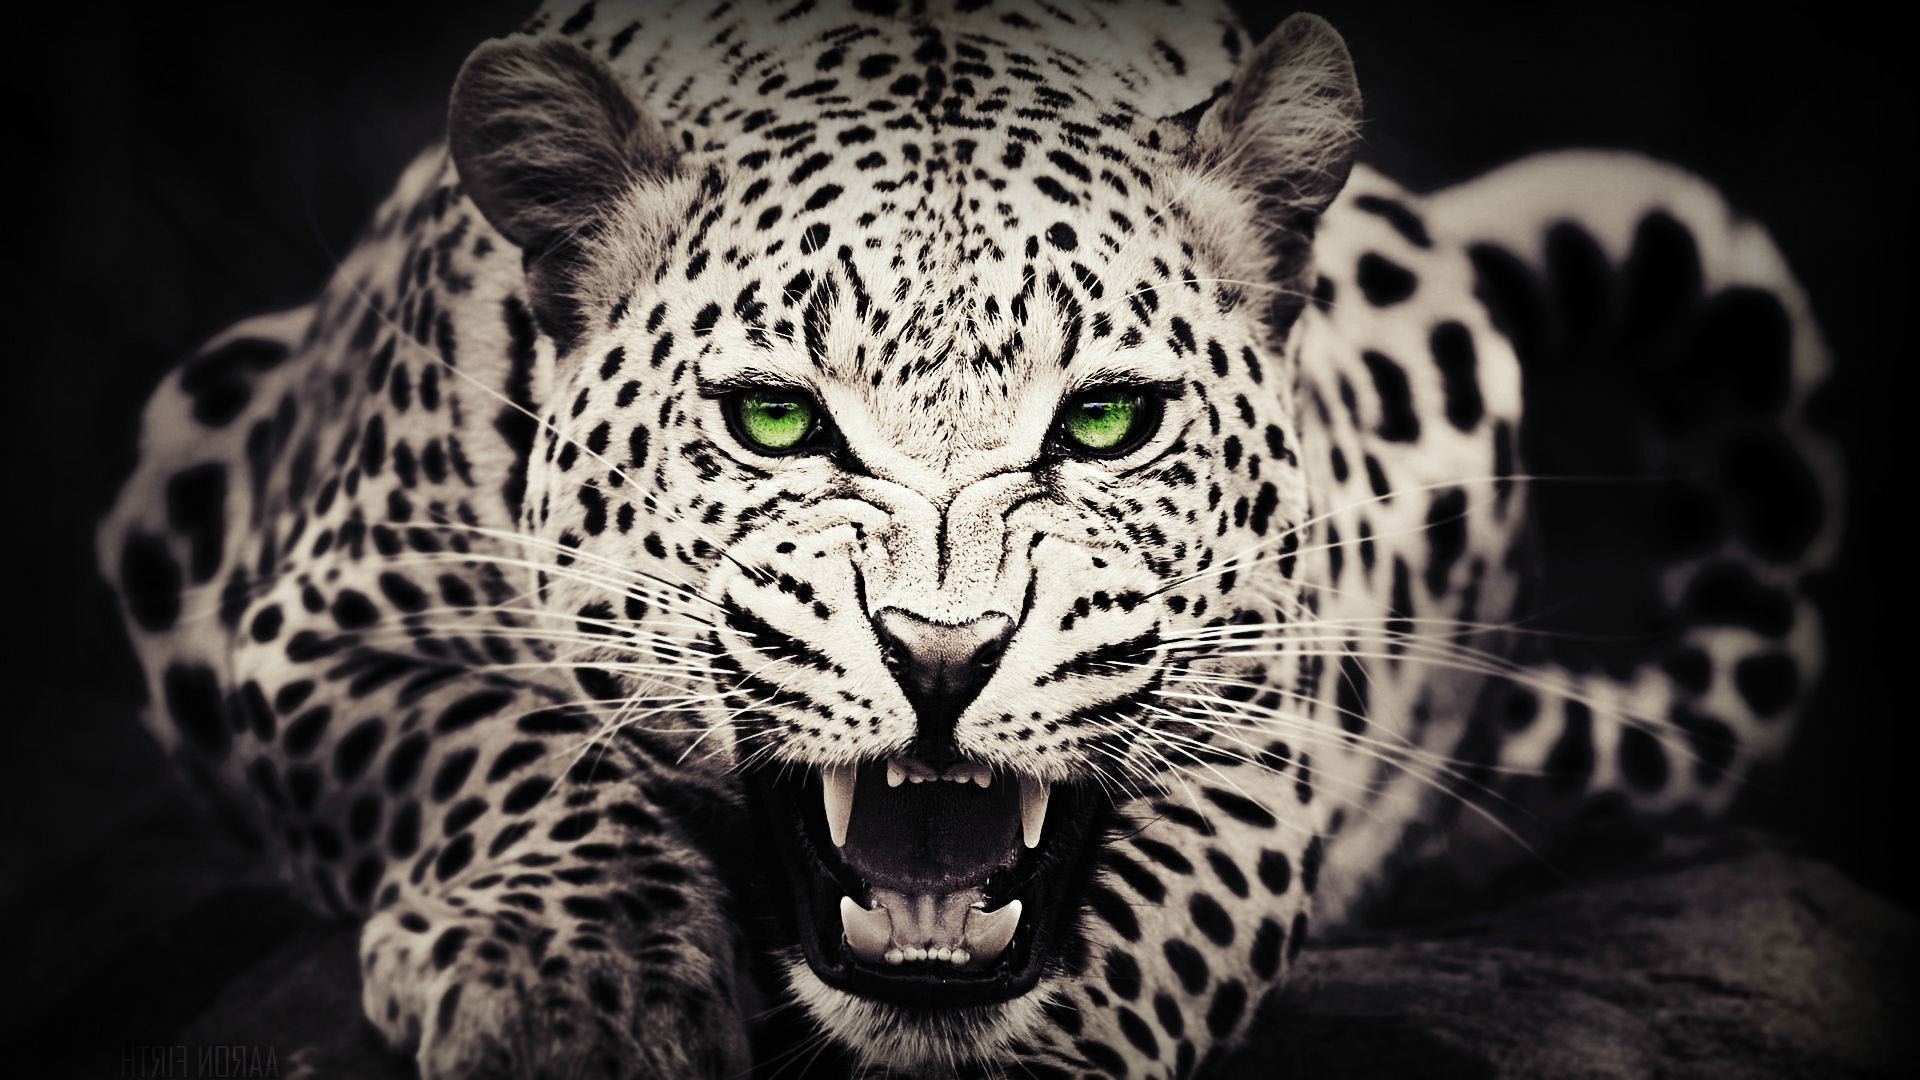 Wallpapers Of Cheetah 72 Images